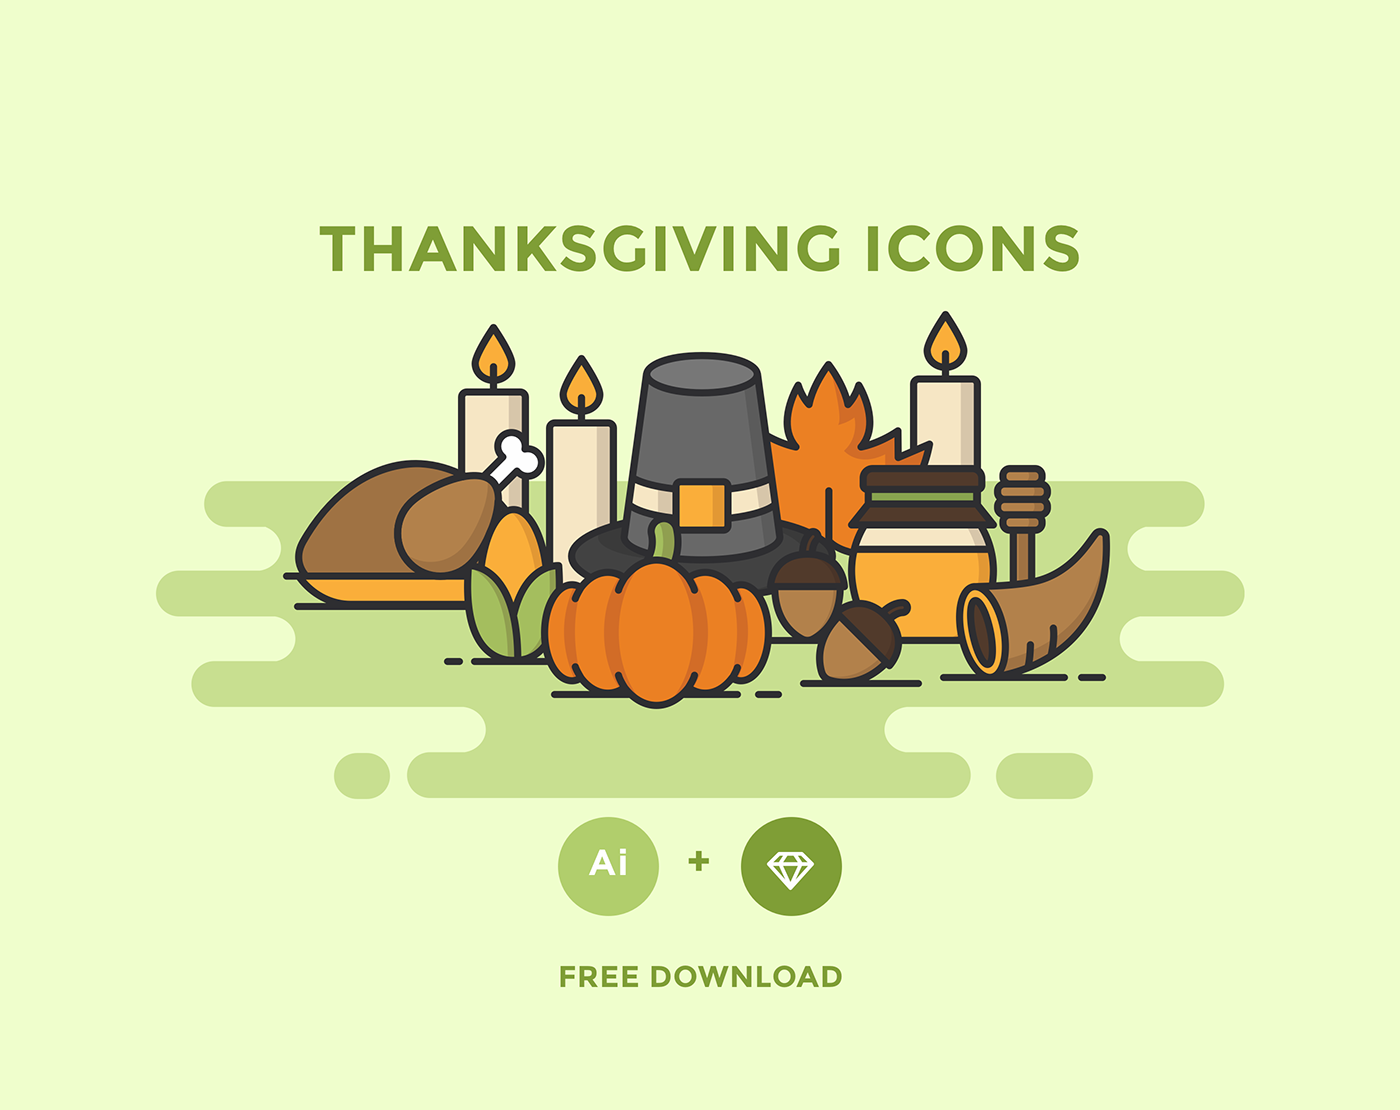 Free Download: Thanksgiving Icons